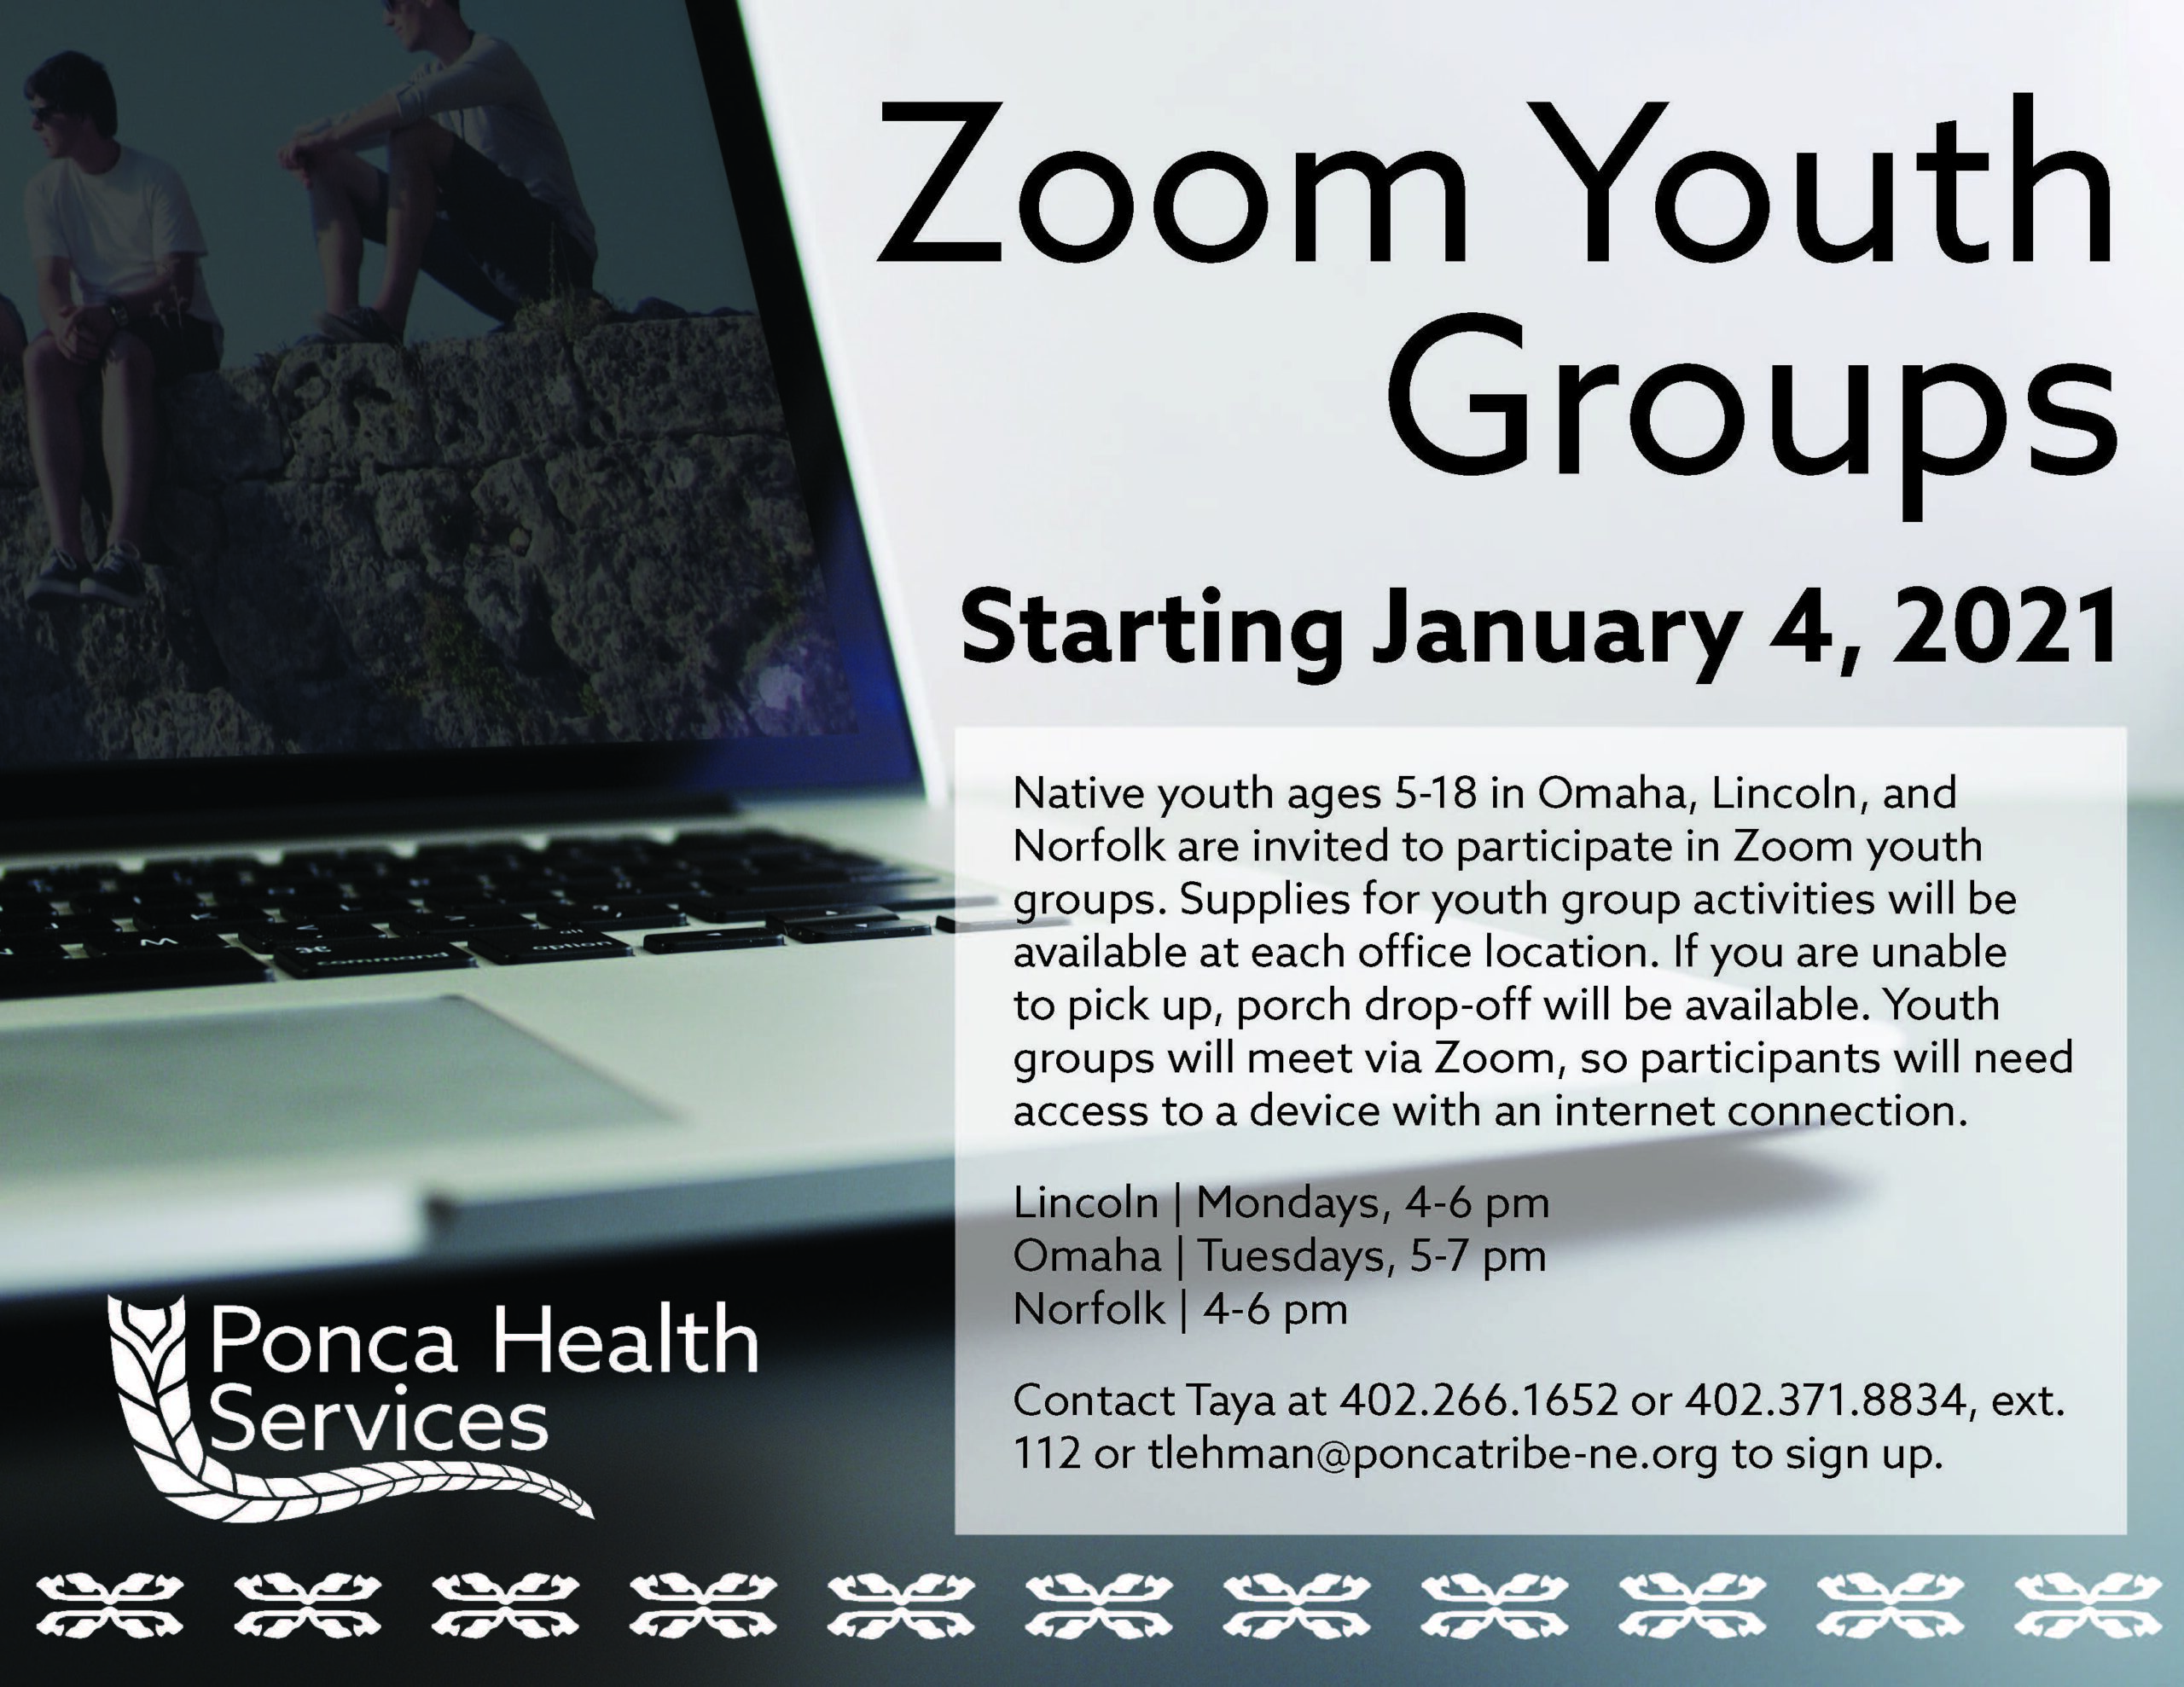 Zoom Youth Groups